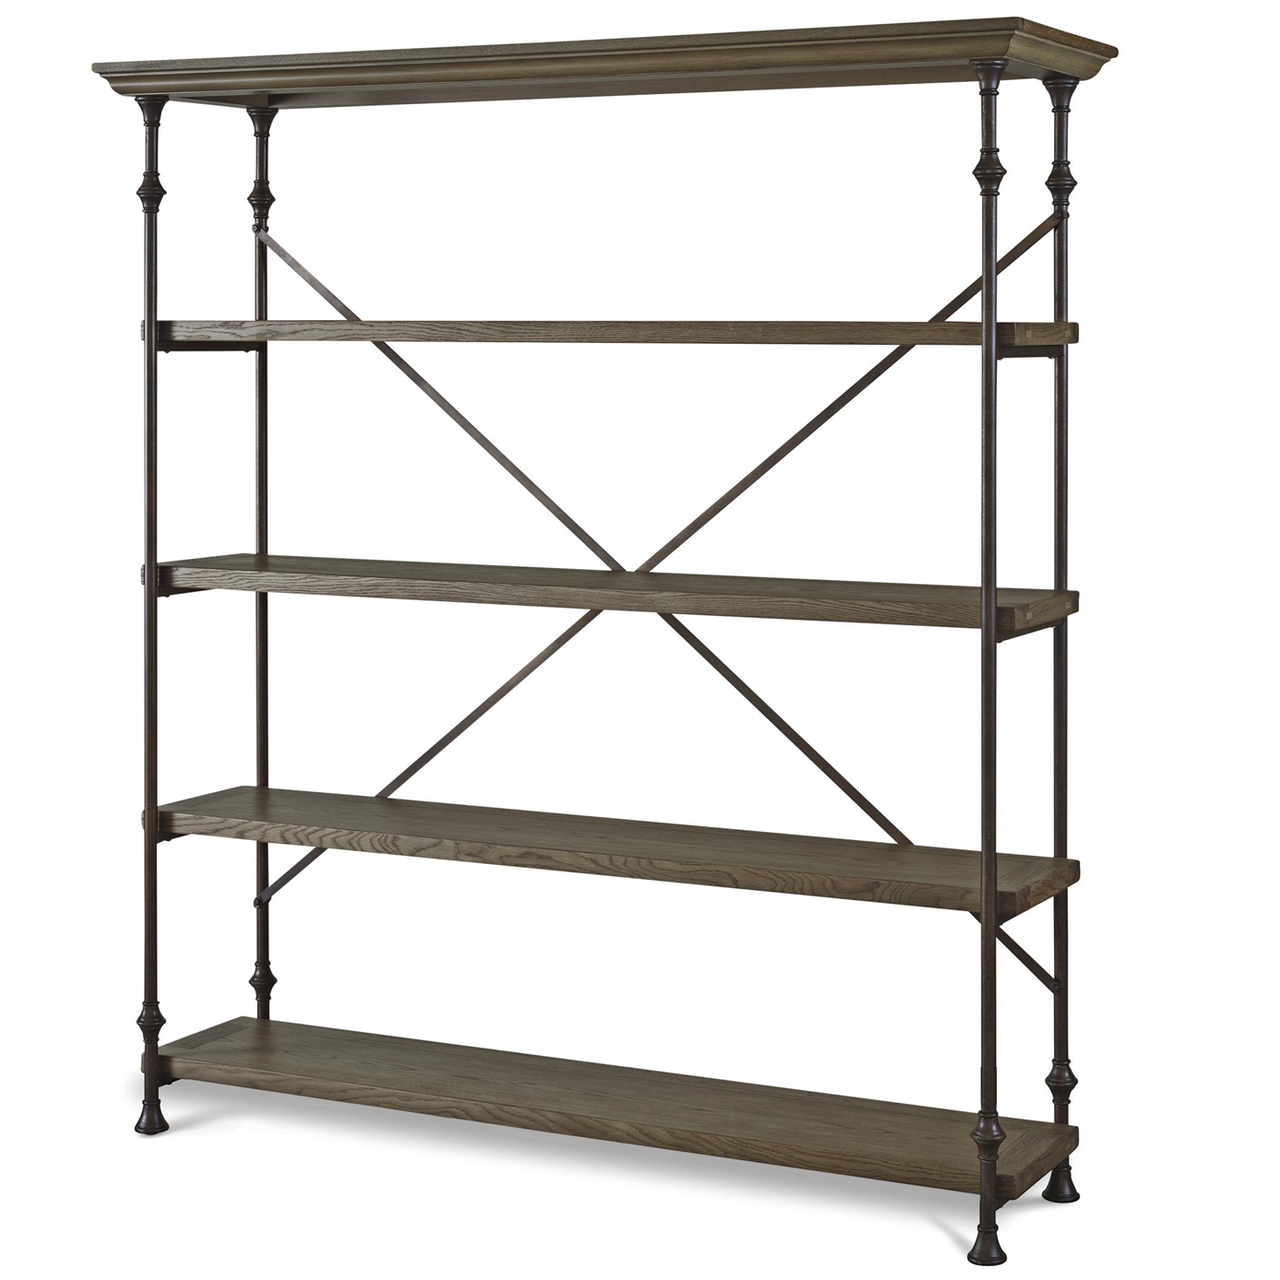 French Industrial Oak Wood + Metal Bakers Rack Shelving